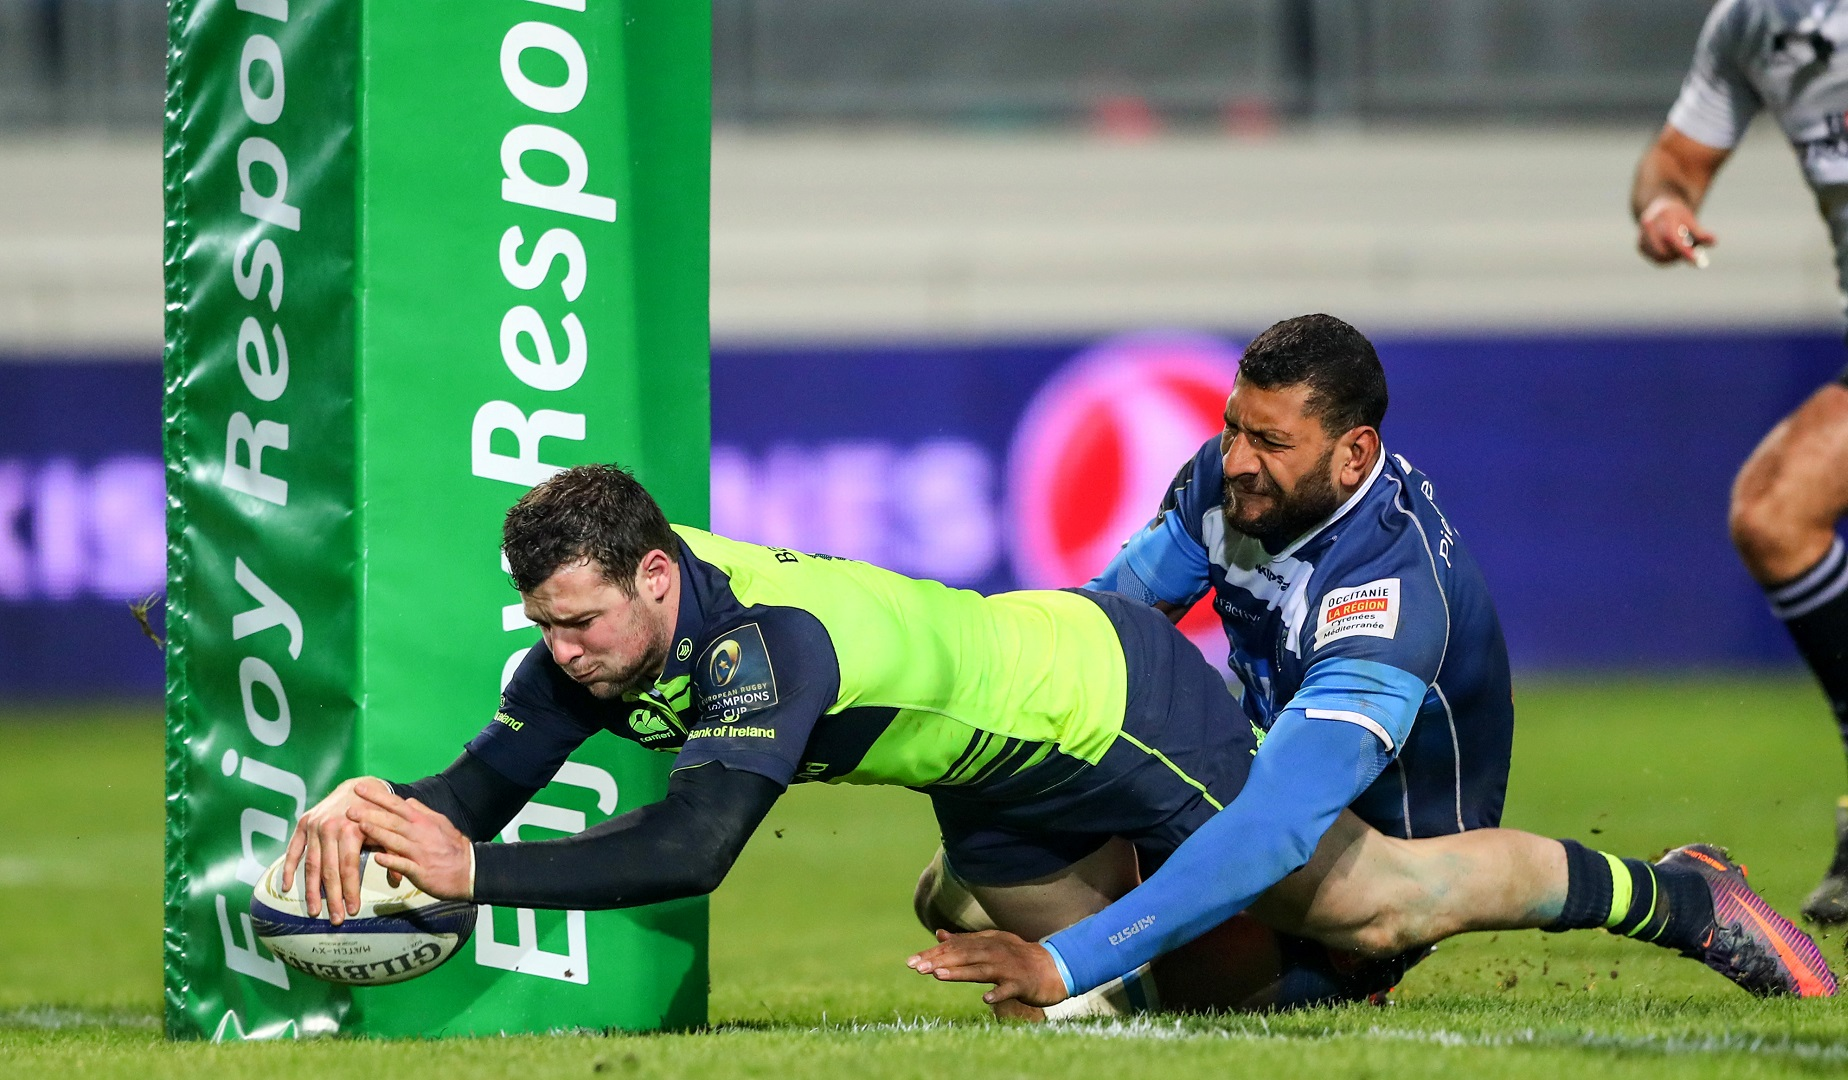 LionsWatch: Henshaw gets try double as Leinster draw in France